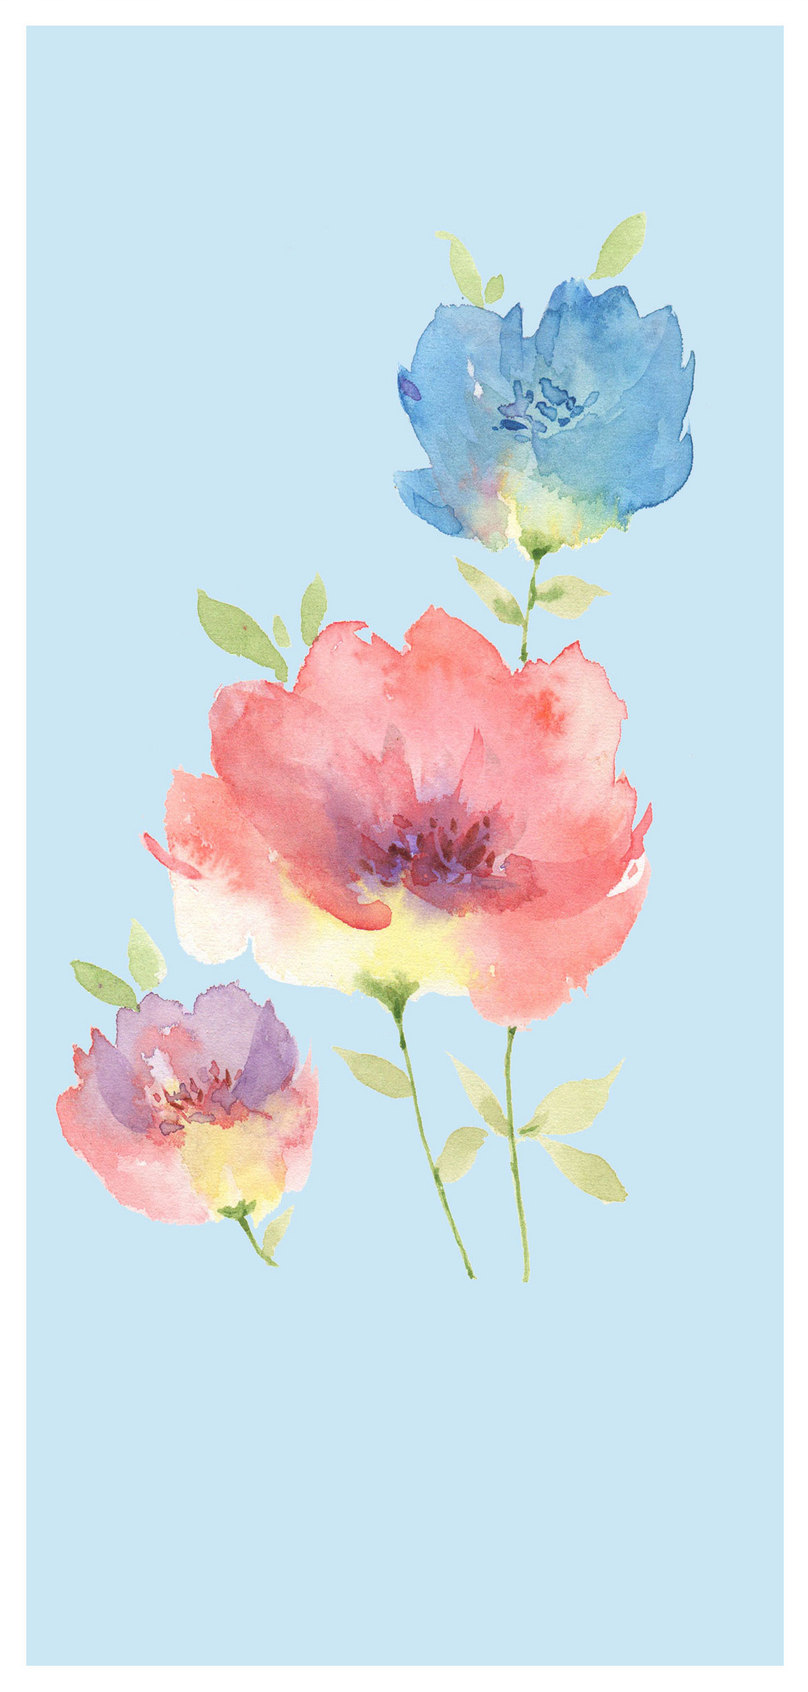 Watercolor Flower Cell Phone Wallpaper Backgrounds Image Picture